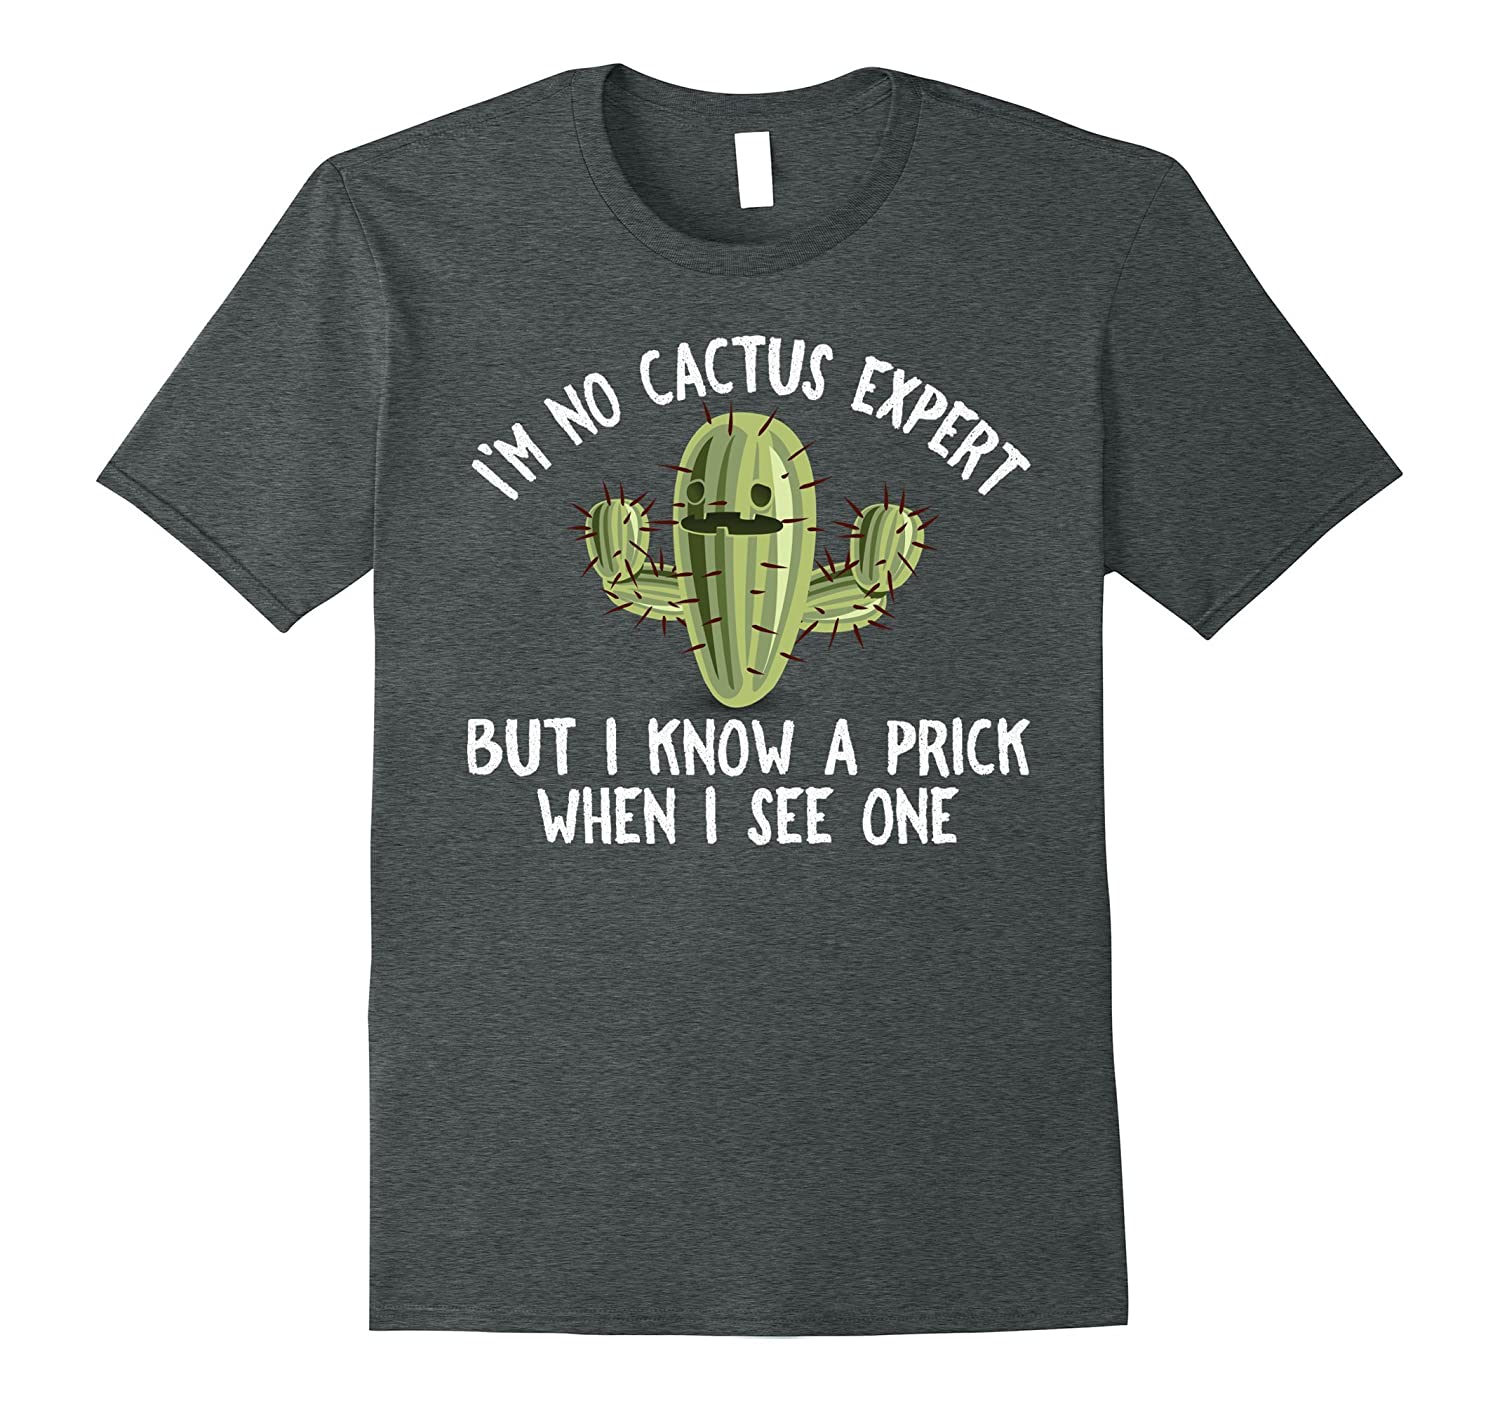 IM NO CACTUS EXPERT BUT I KNOW A PRICK WHEN I SEE ONE SHIRT-Vaci